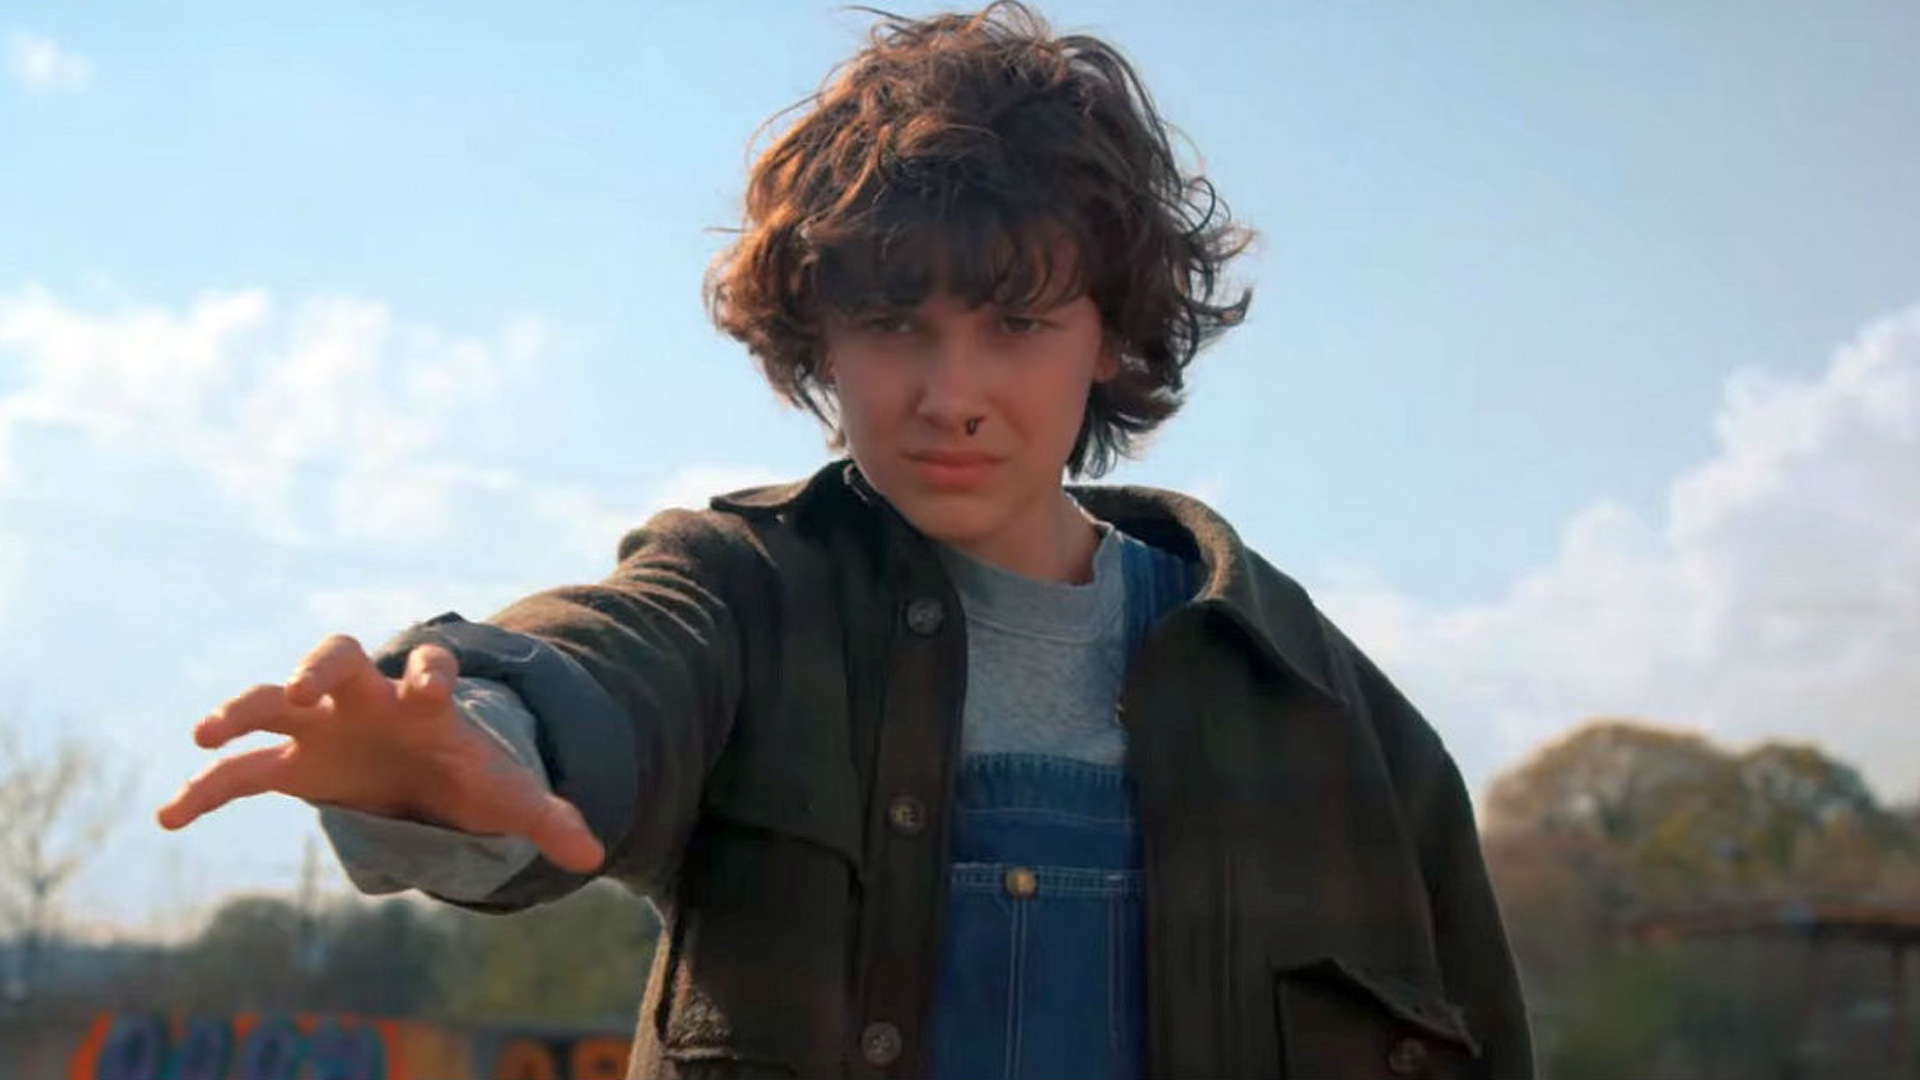 the-duffers-bros-defend-and-explain-the-controversial-seventh-episode-of-stranger-things-season-2-social.jpg